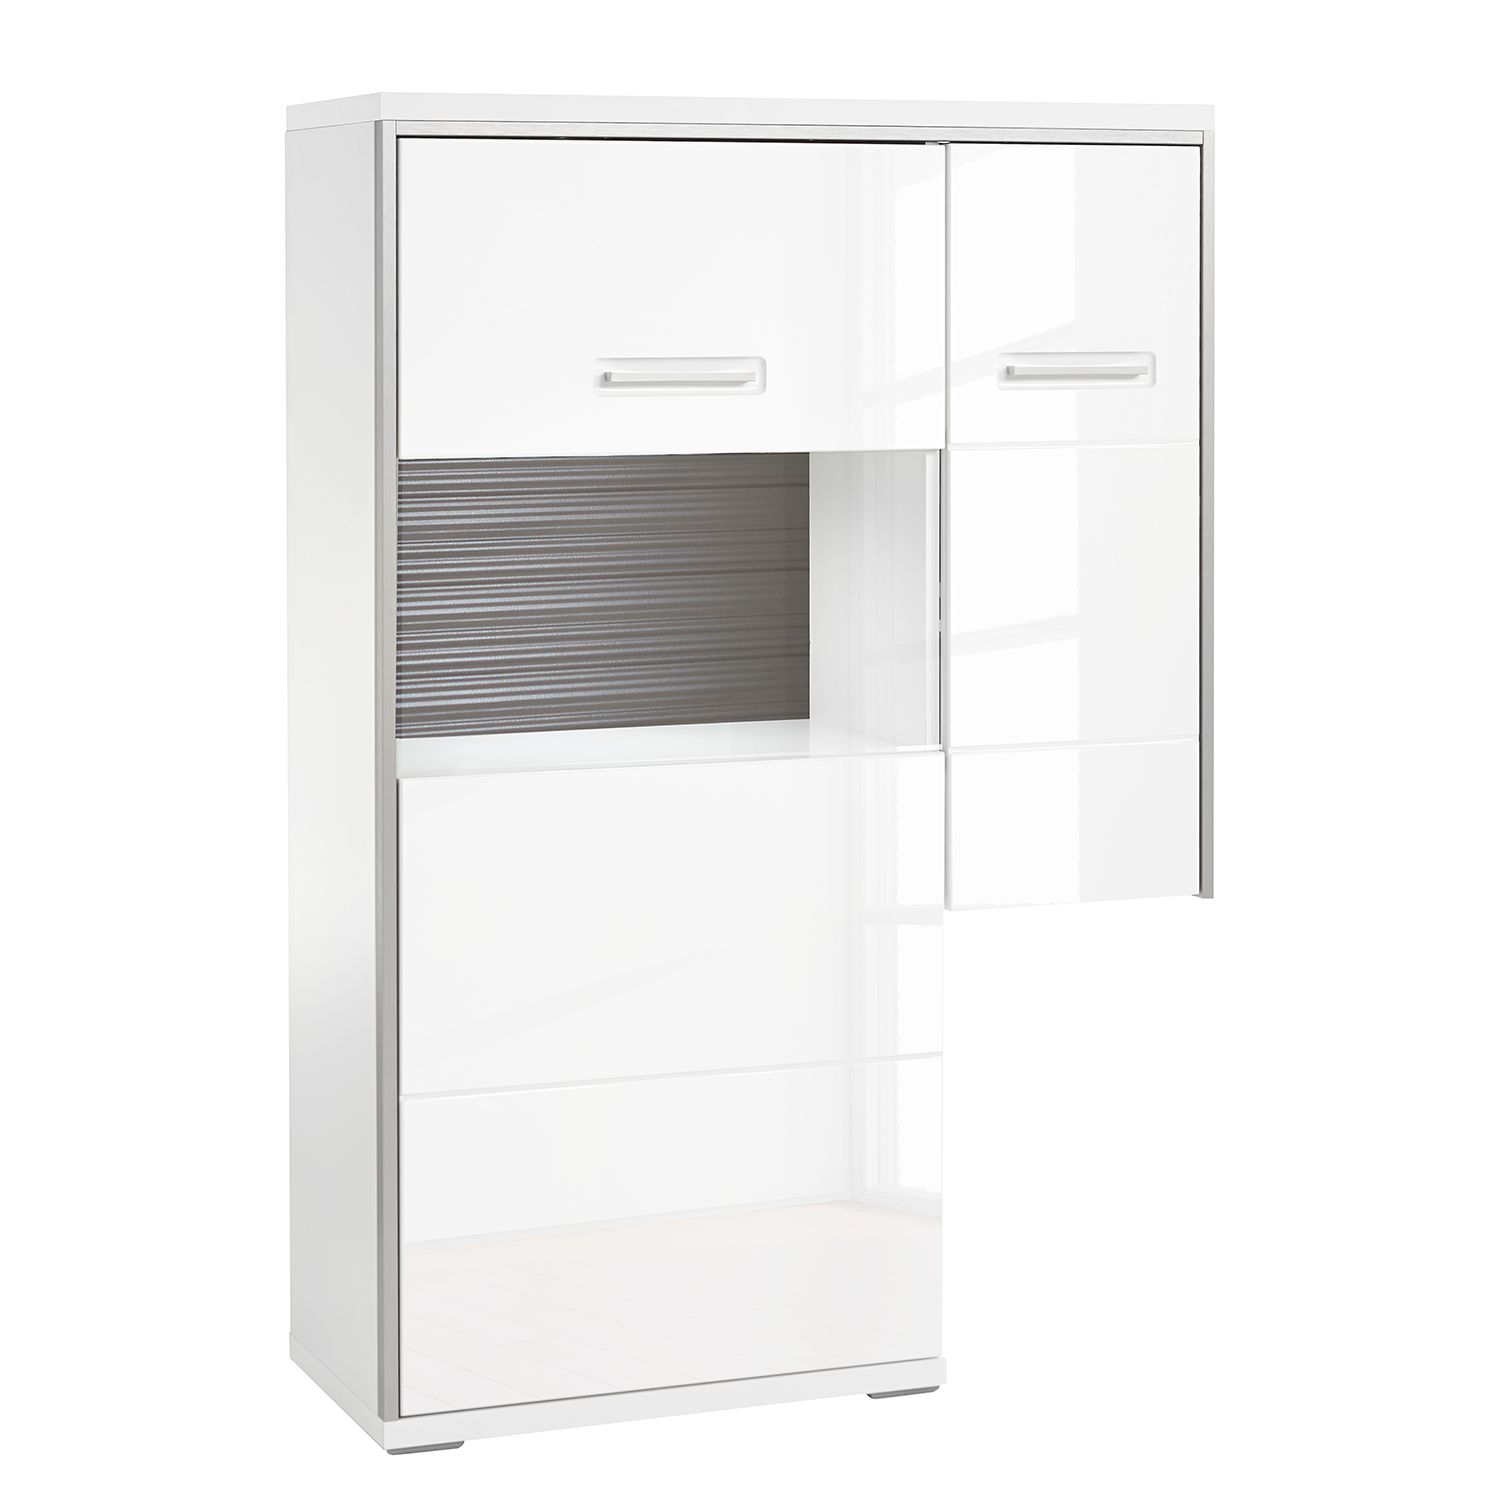 Glastür Metallrahmen Highboard Kushiro Iii Hochglanz Weiß Grau Glastür Links